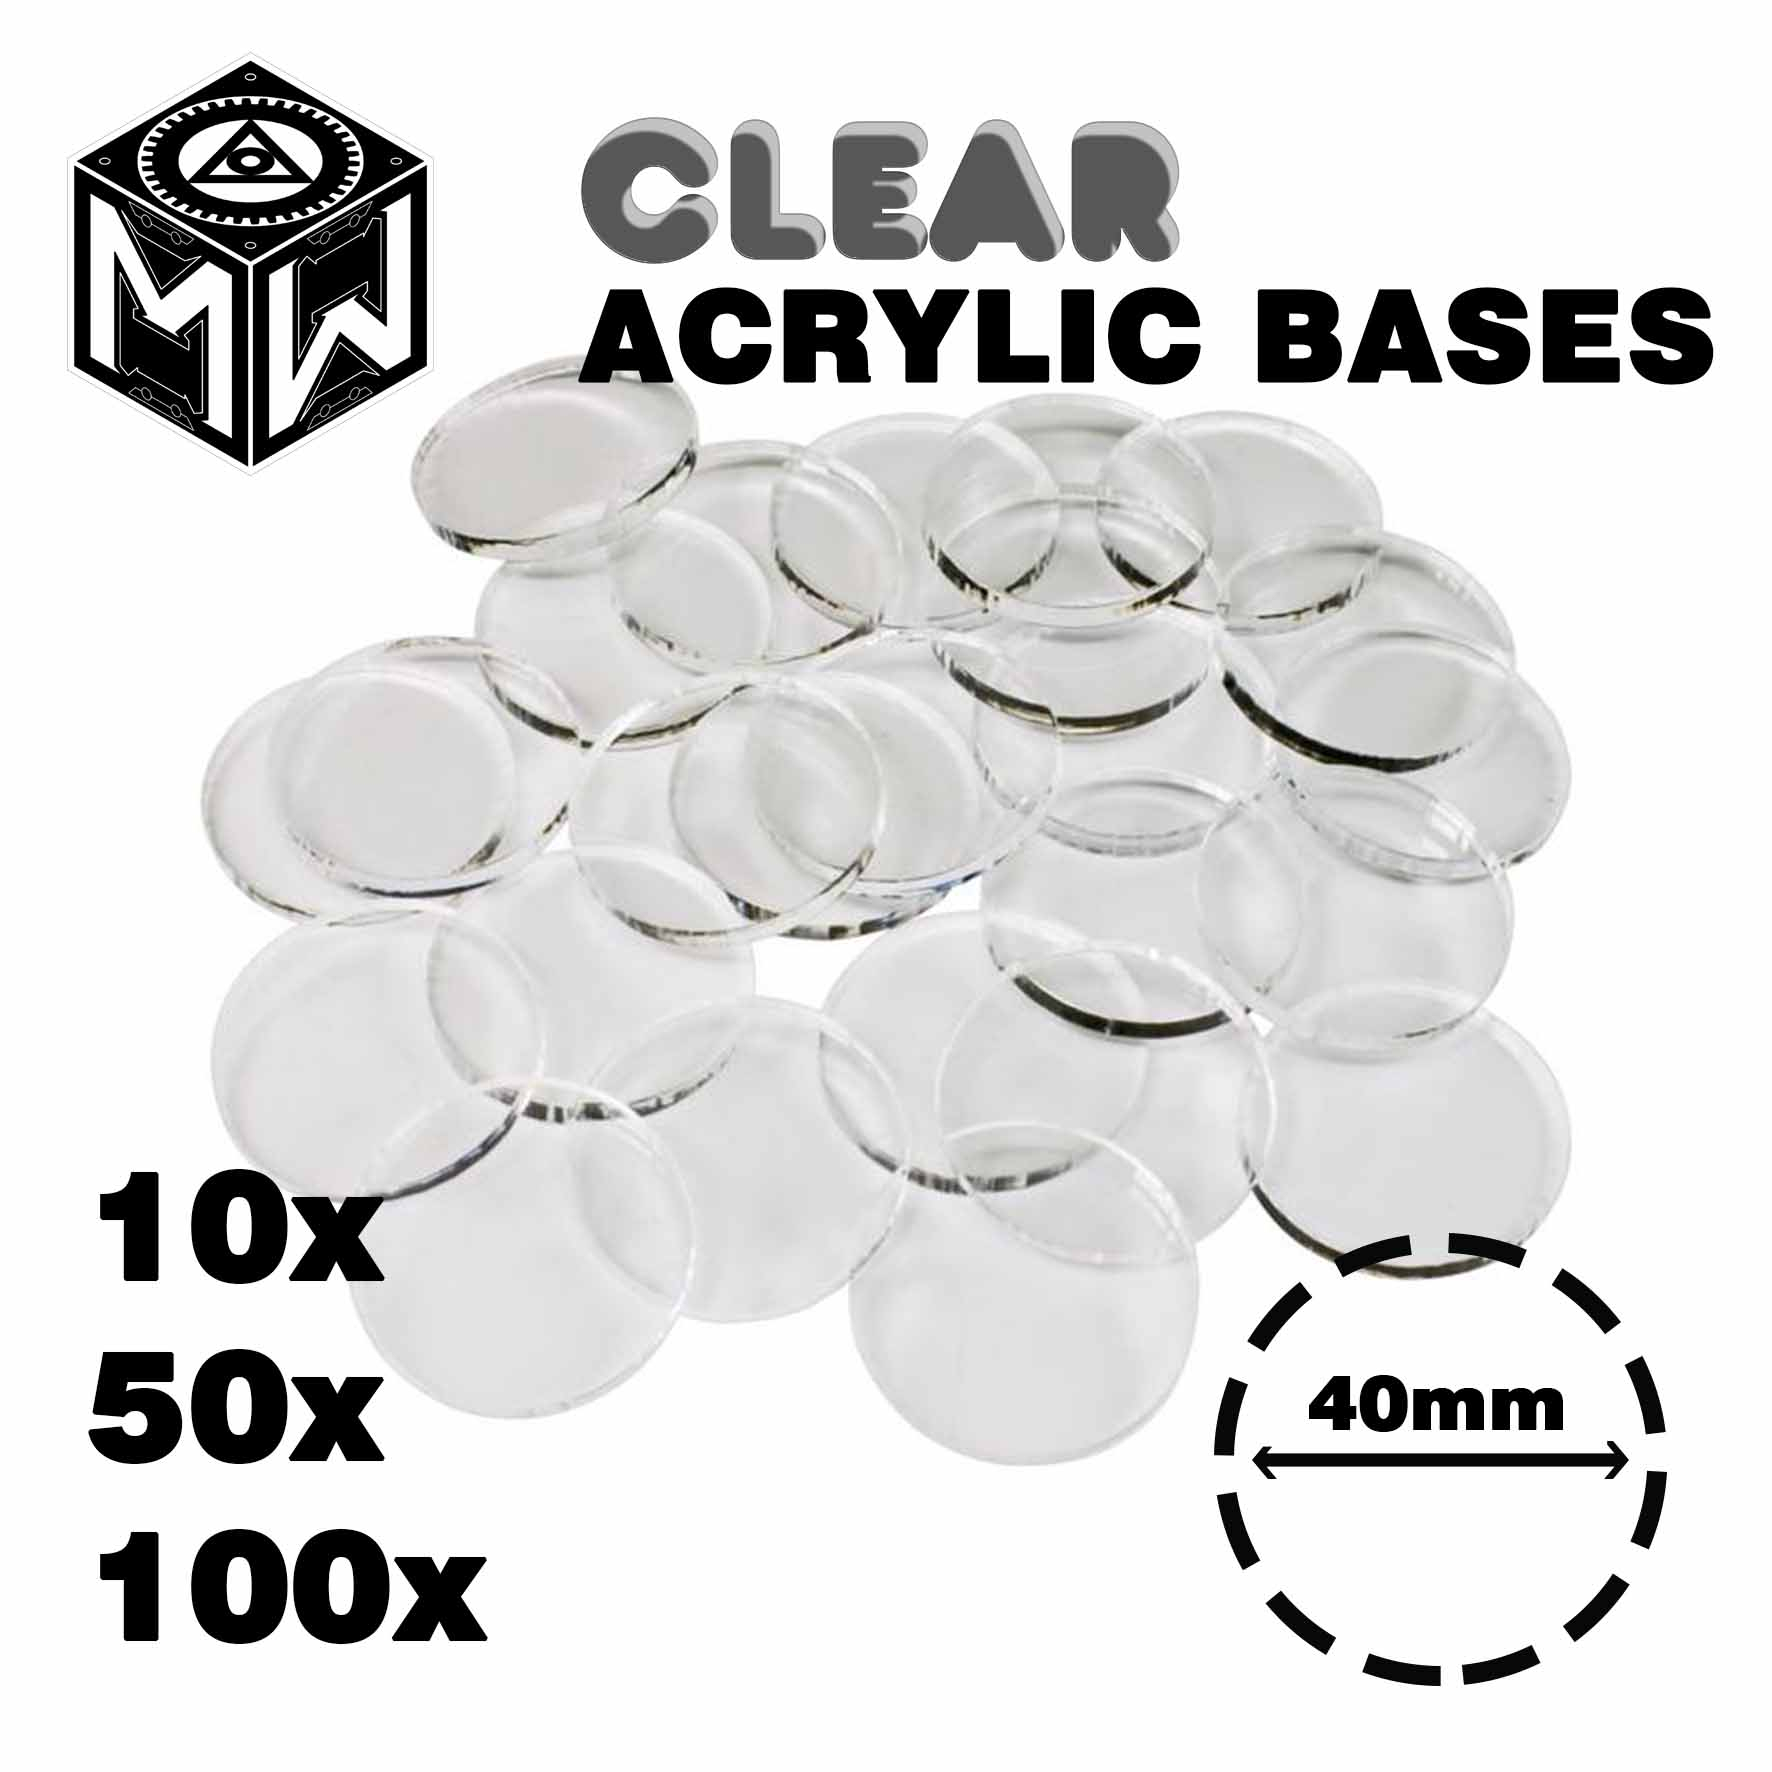 3mm Acrylic Clear Bases, Round 40mm